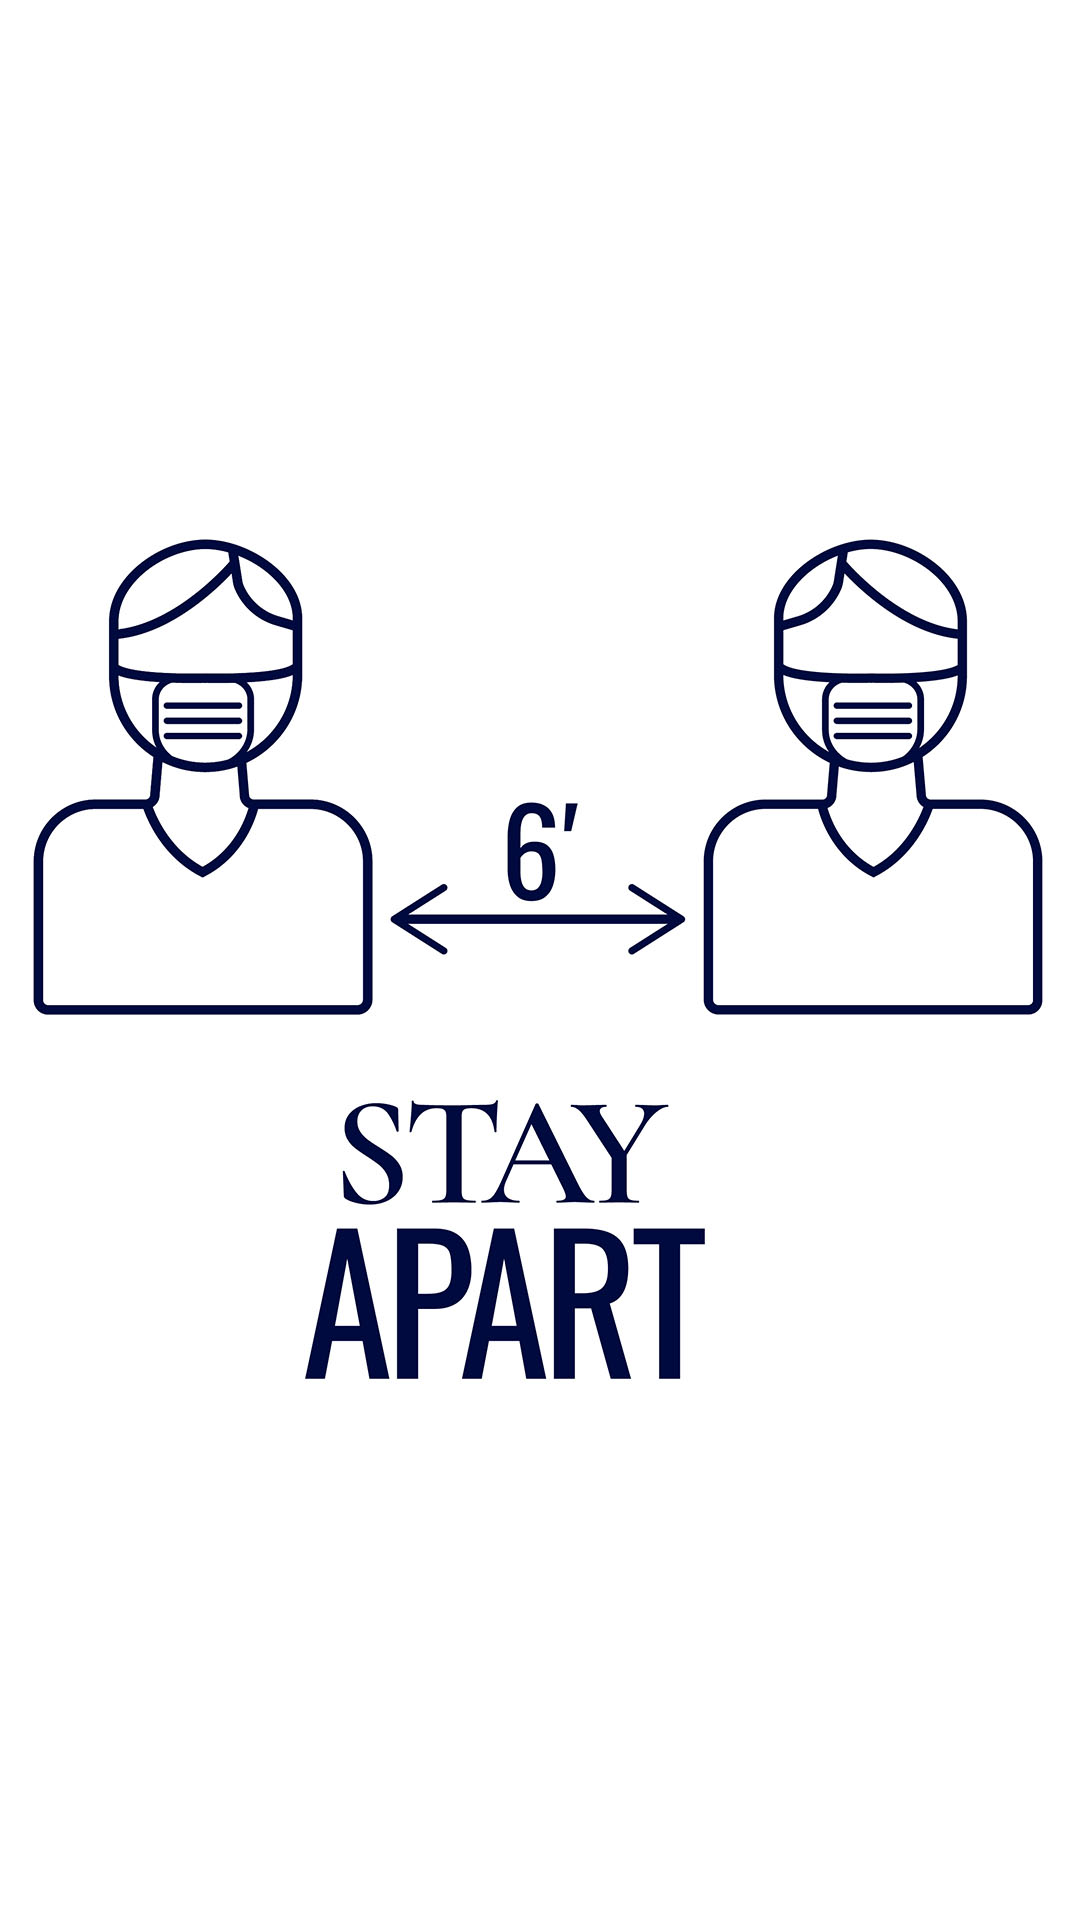 Stay apart (6 feet distancing)